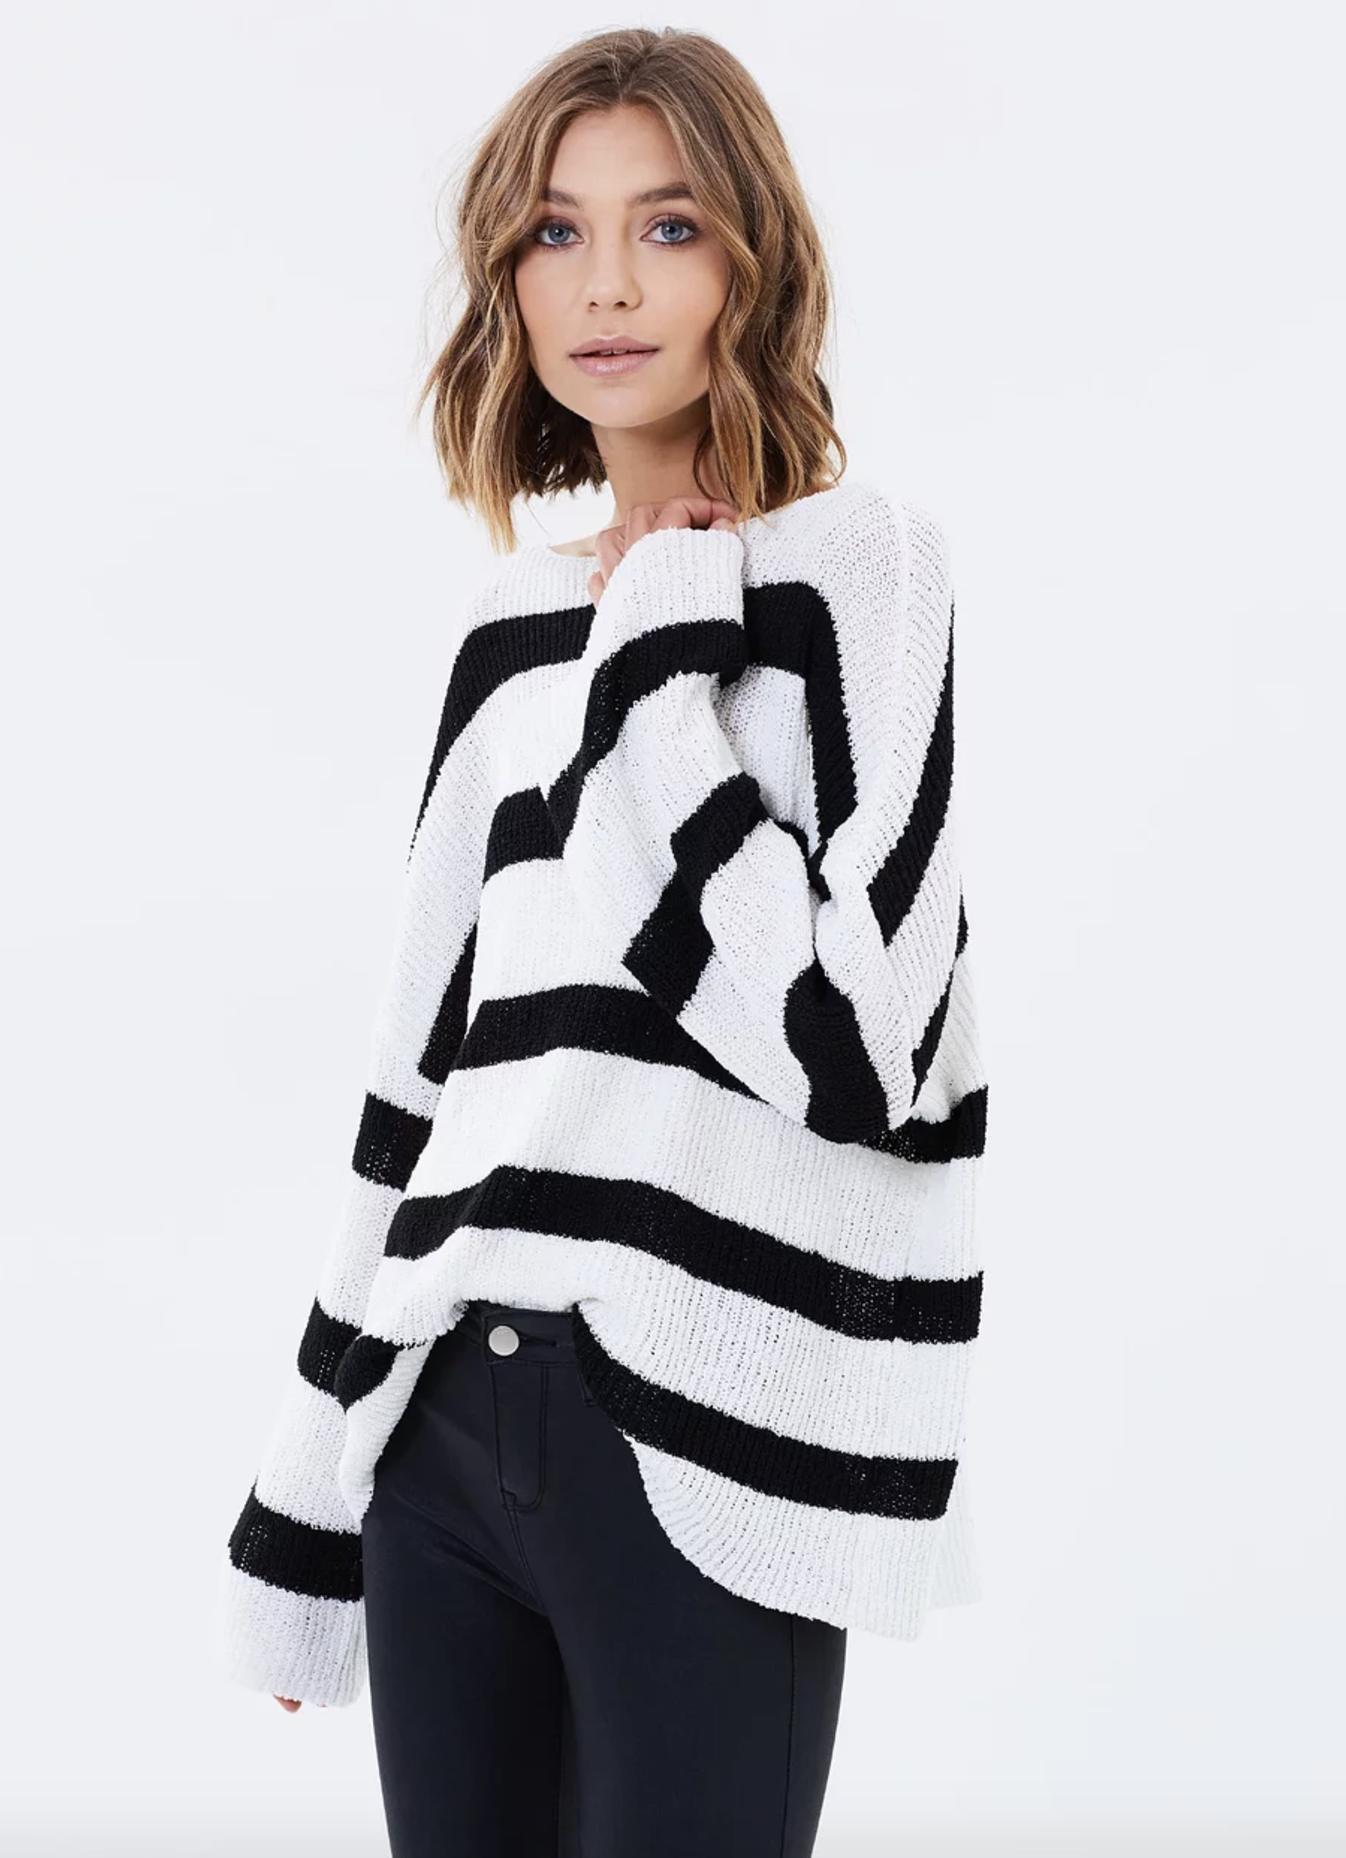 Atmos & Here effortless wide neck knit top $69.95